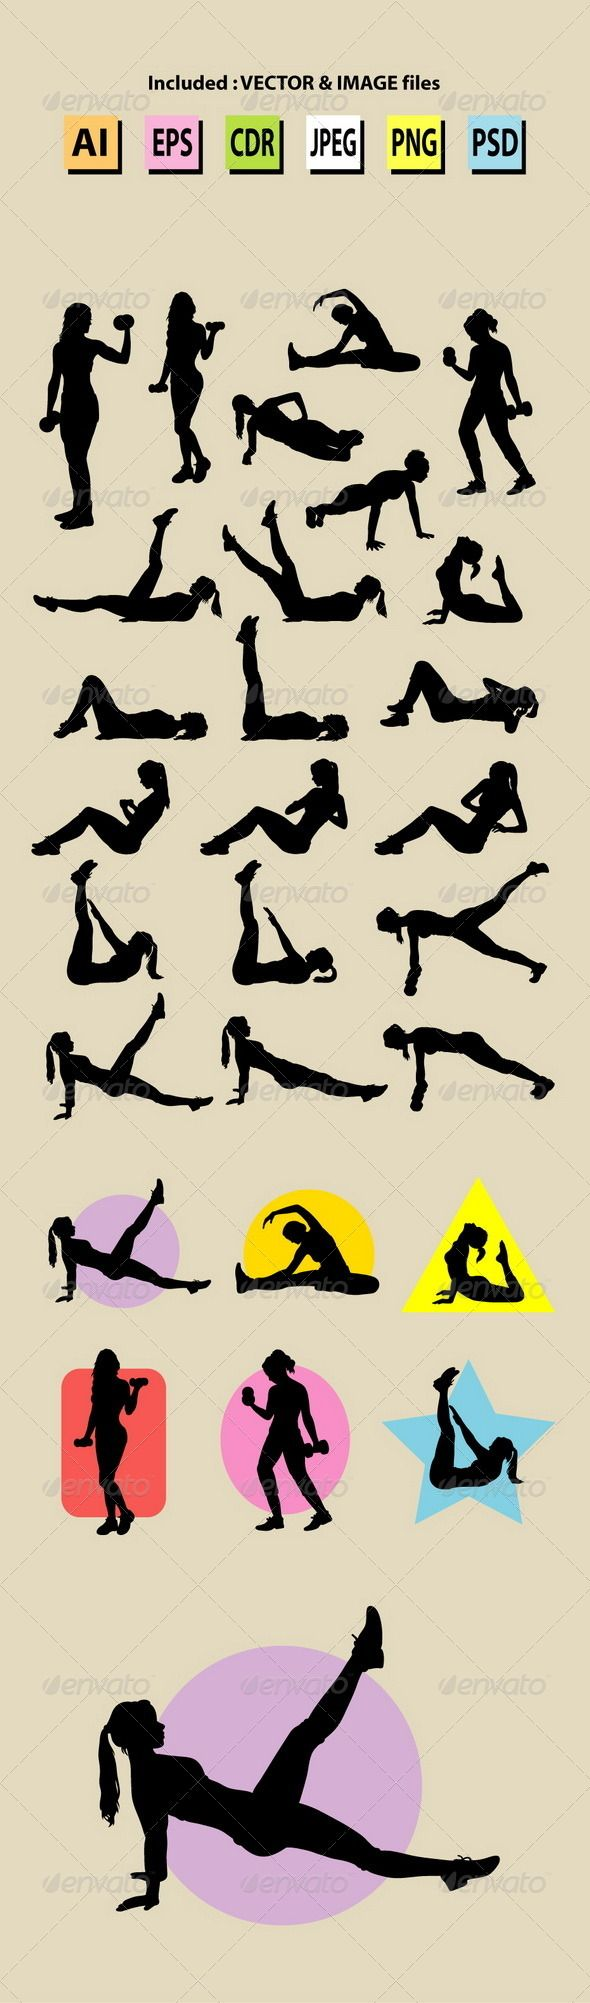 Female Sport Training Silhouettes  #GraphicRiver Girl sport activity silhouettes. Nice and smooth vector. Good use for your symbol, logo, sticker, icon, or any design you want. Easy to use, edit, or change color.   ZIP included : AI, EPS, CDR coreldraw (vector files = You can use any size you want without loss resolution), JPEG high resolution, PNG transparent, and PSD photoshop file.     Created: 6November13 GraphicsFilesIncluded: PhotoshopPSD